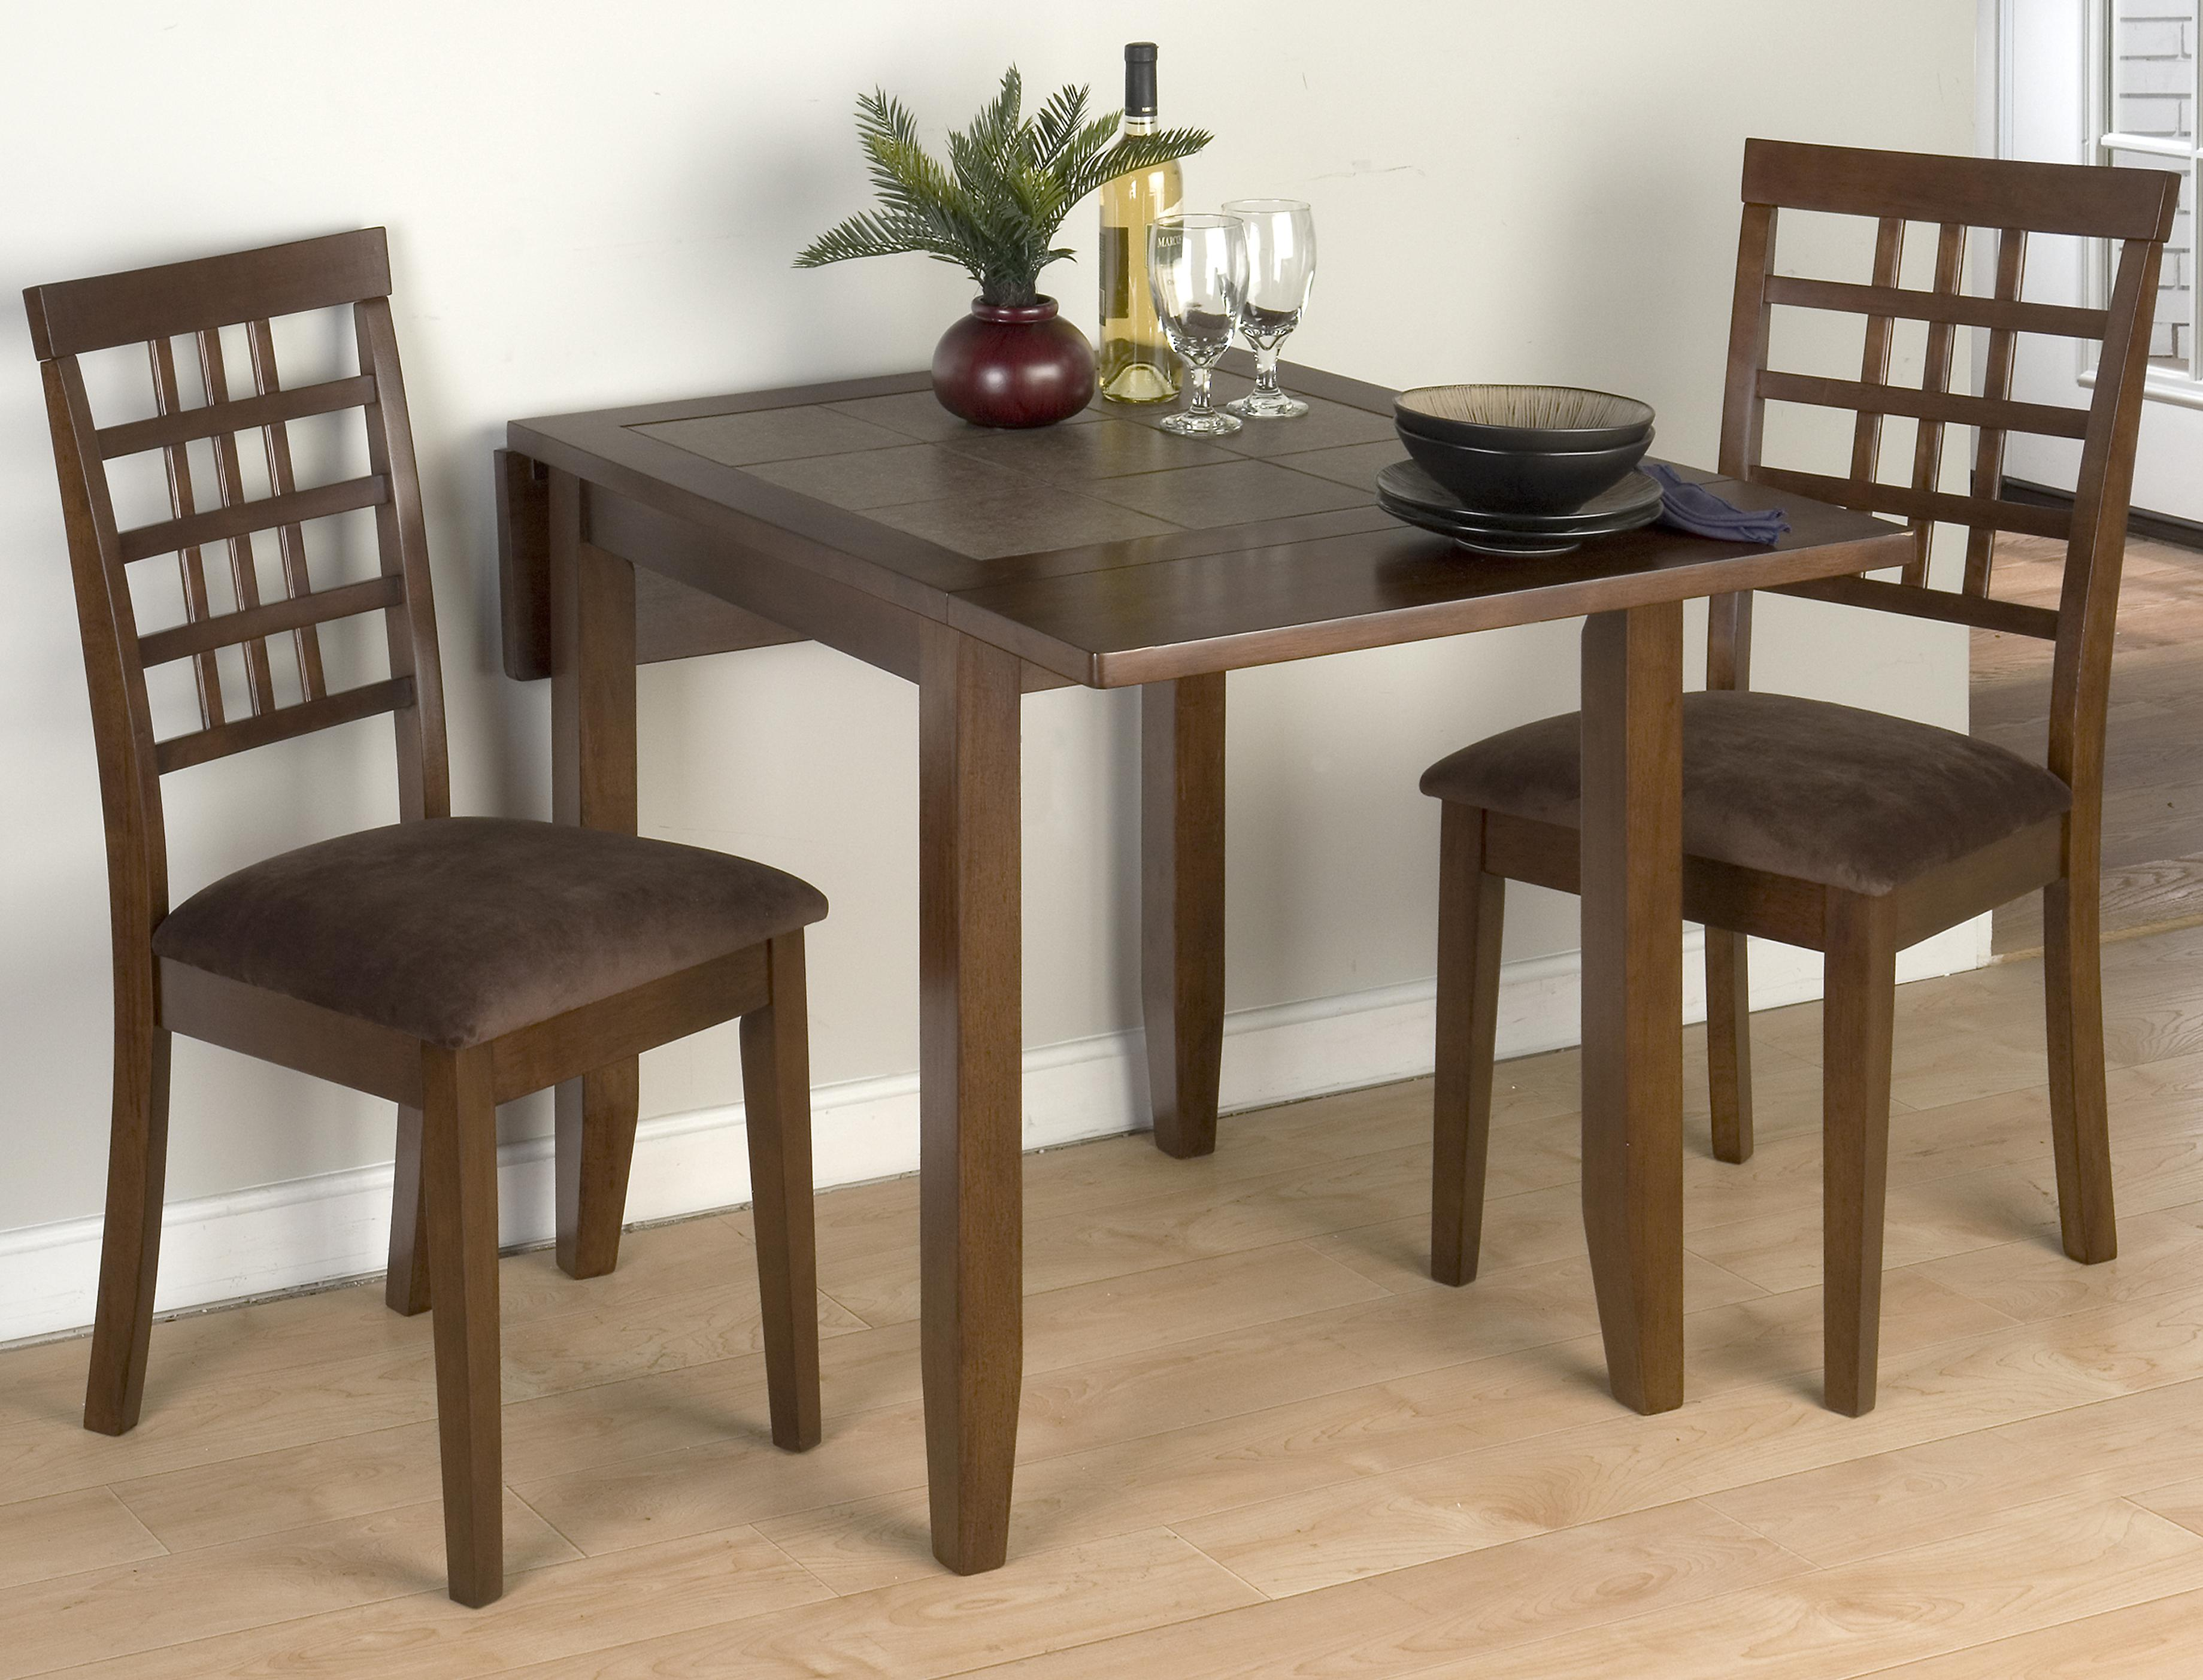 Jofran Chelsea 3 Piece Table and Chair Set - Item Number: 976-30+2x515KD